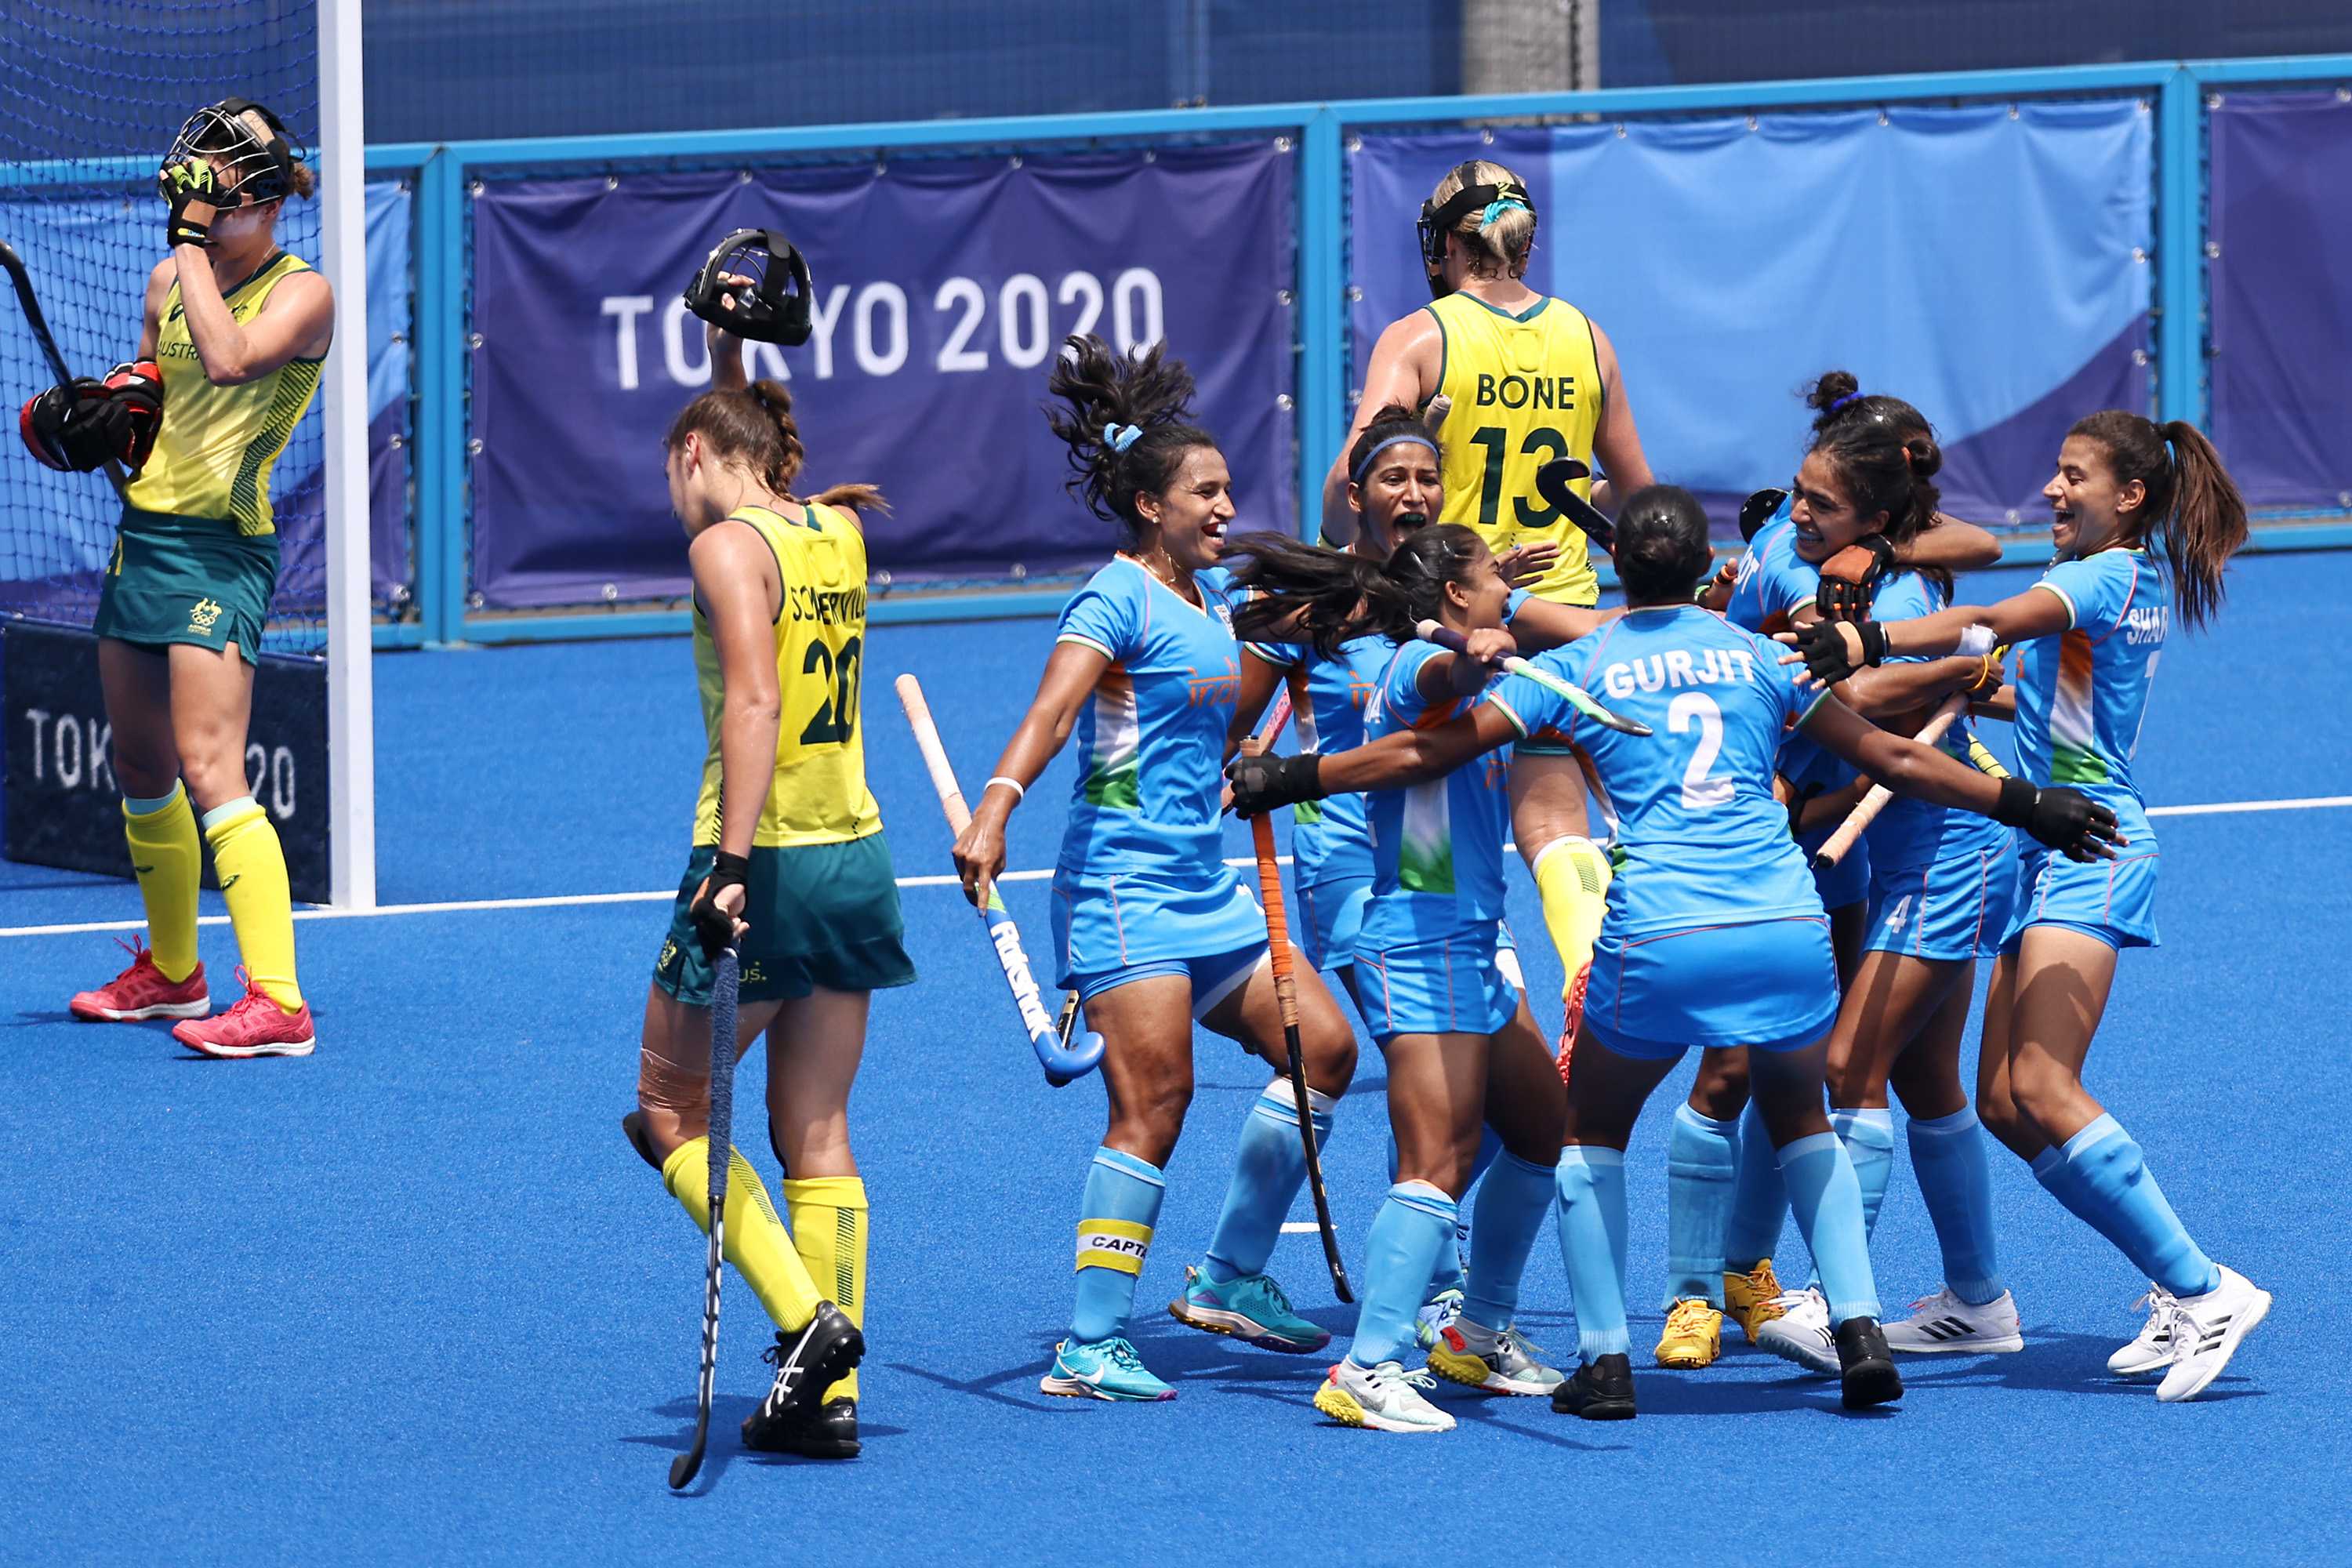 the Indian women's hockey team etched its name in the history books by entering the semifinals for the first time, stunning three-time champions and world number 2 Australia 1-0